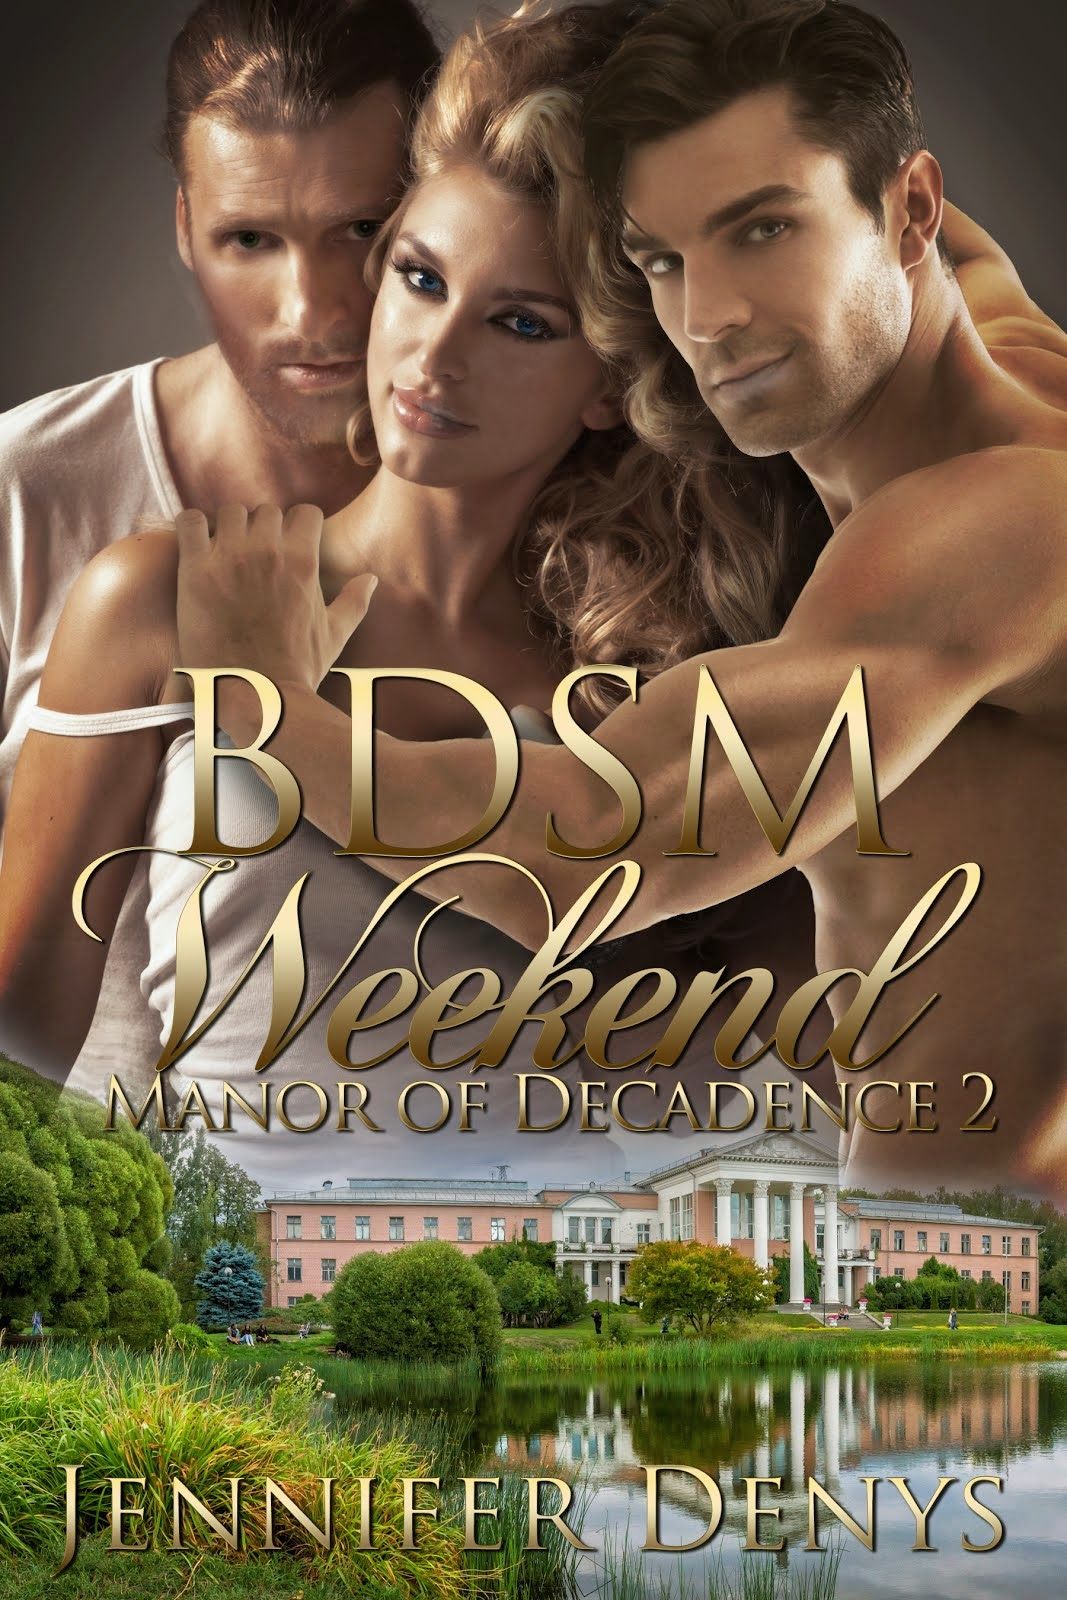 BDSM Weekend is now out!